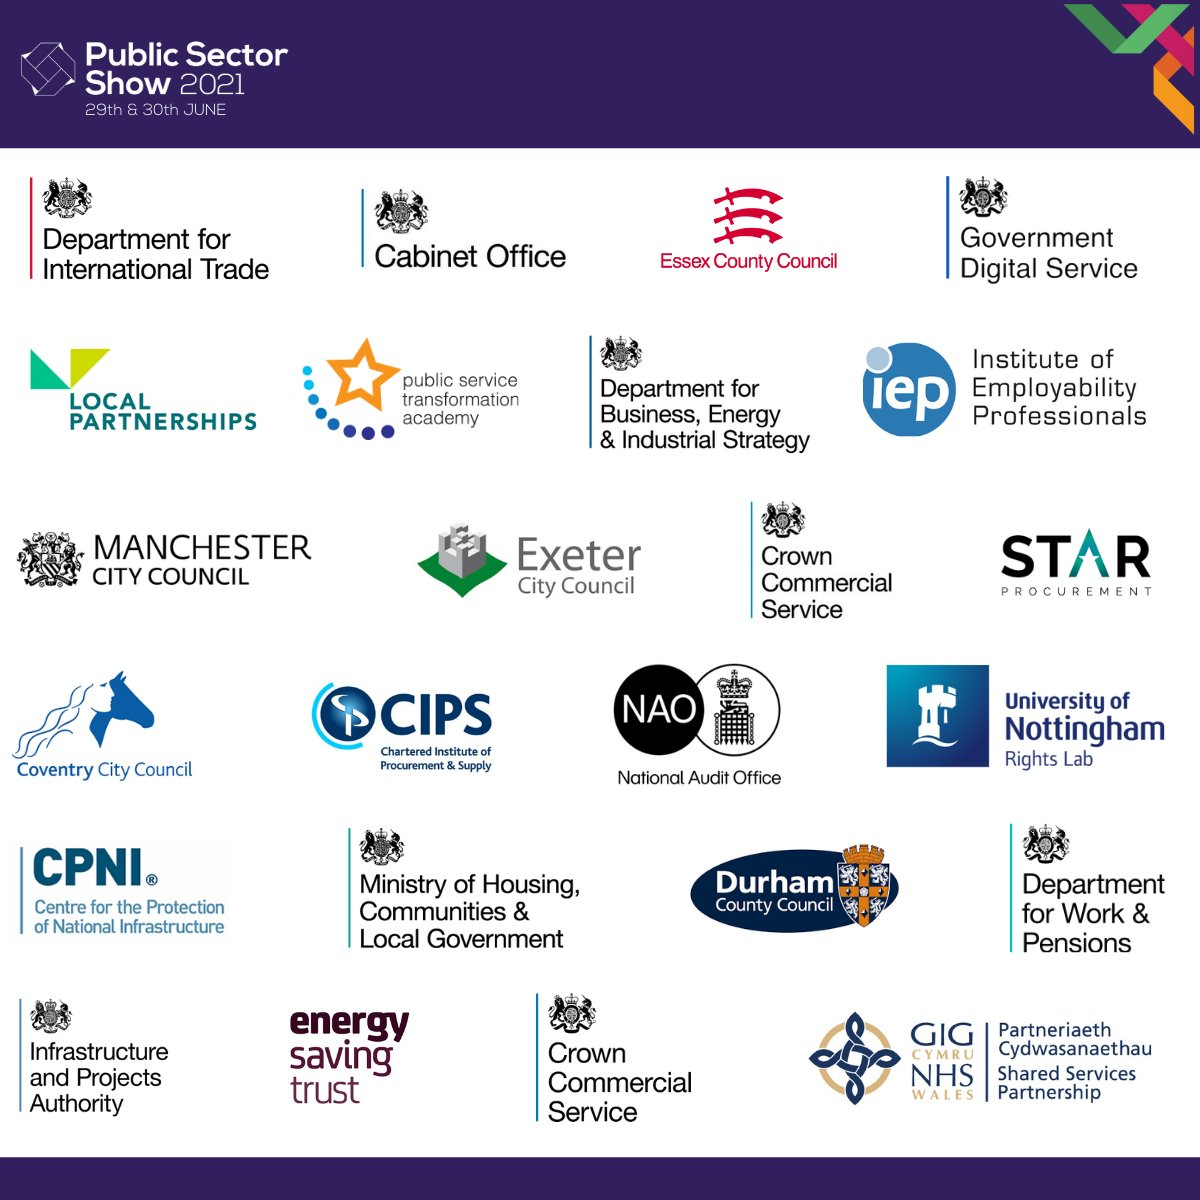 RT @Public_SectorUK Get your free pass to hear government C-Suite and Directors giving their advice on #publicsector #procurement on 29-30th June >> https://t.co/pMUfNjBaYV  Hear first-hand from speakers including: @gov_procurement, @GDSTeam, @ServiceReform, @LP_localgov, @coventrycc and more!